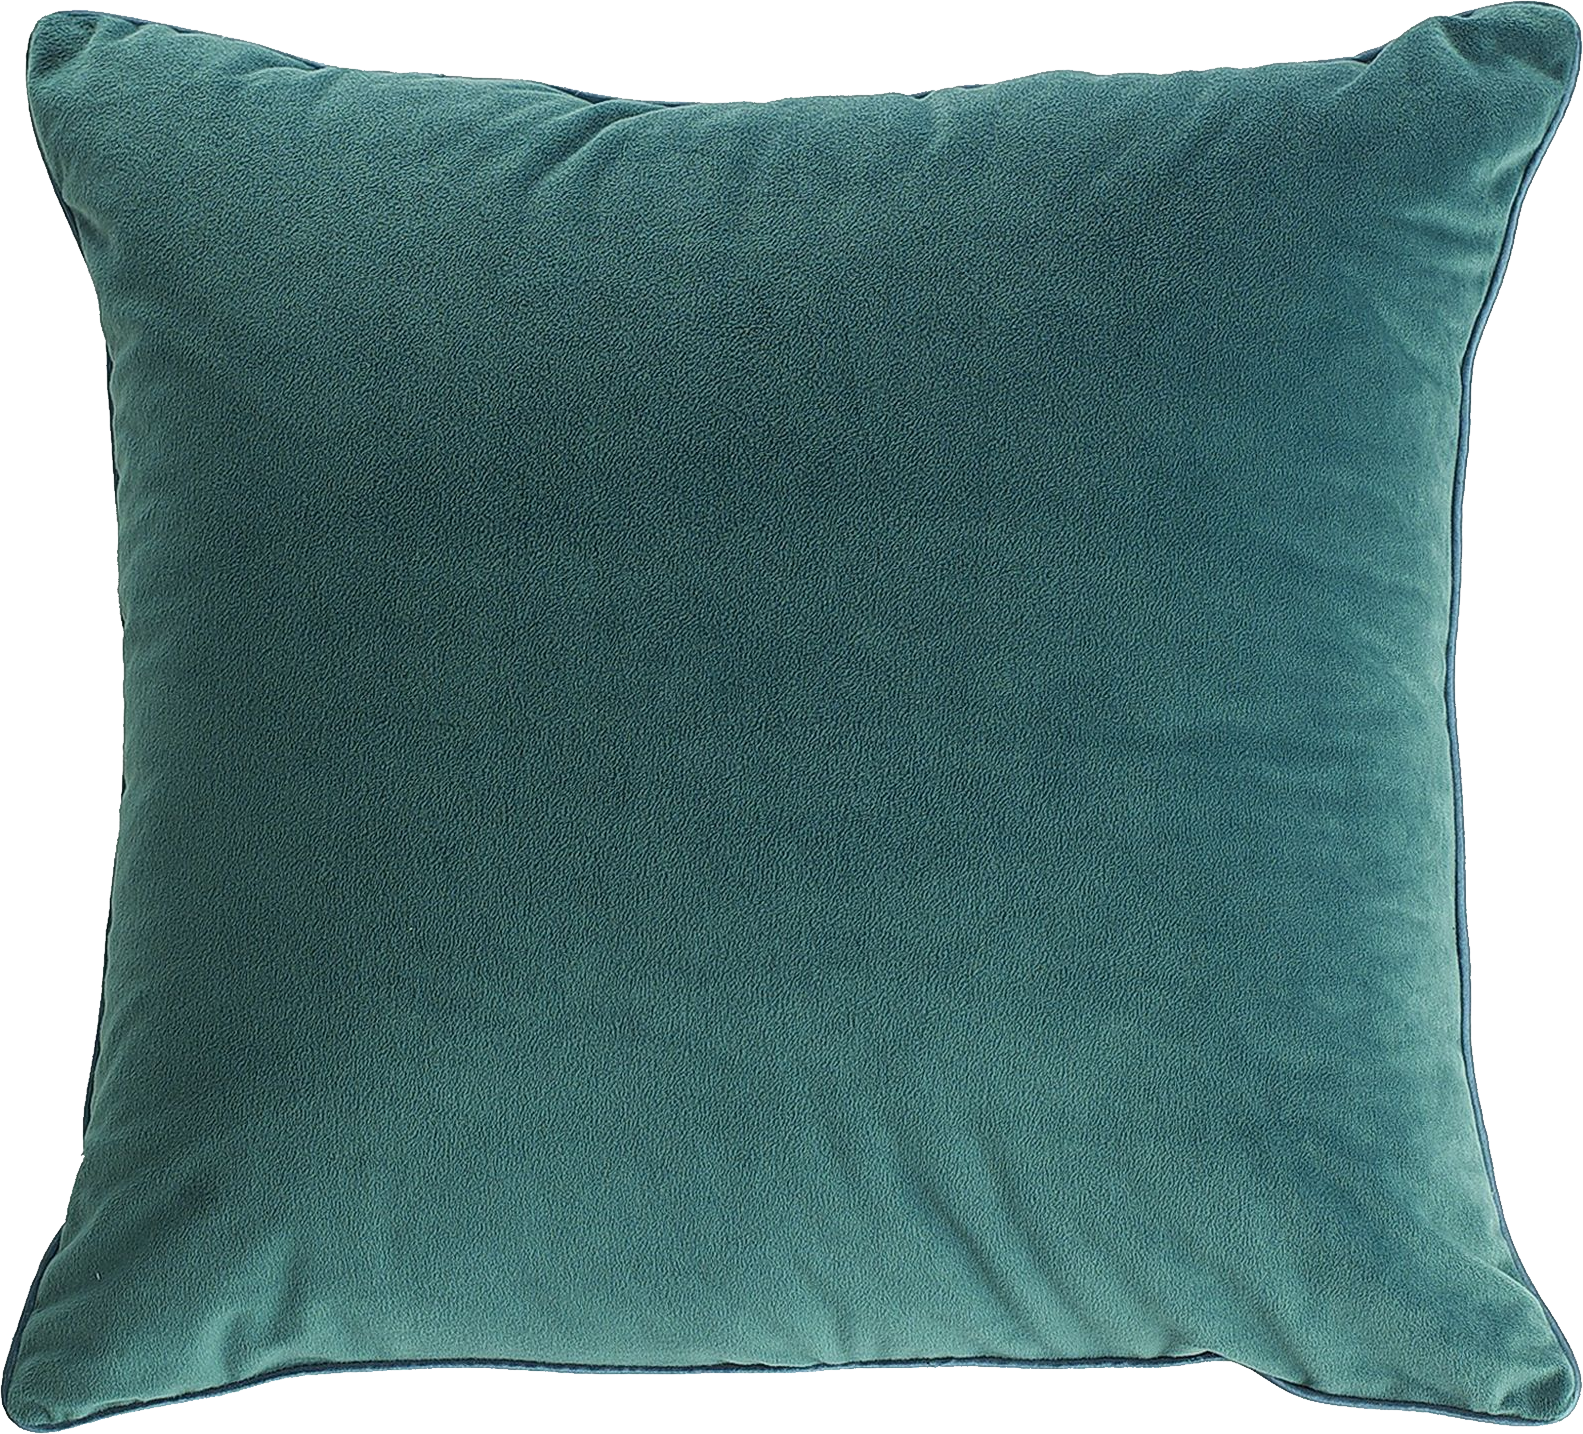 pillow png image collection download crazypng #24843